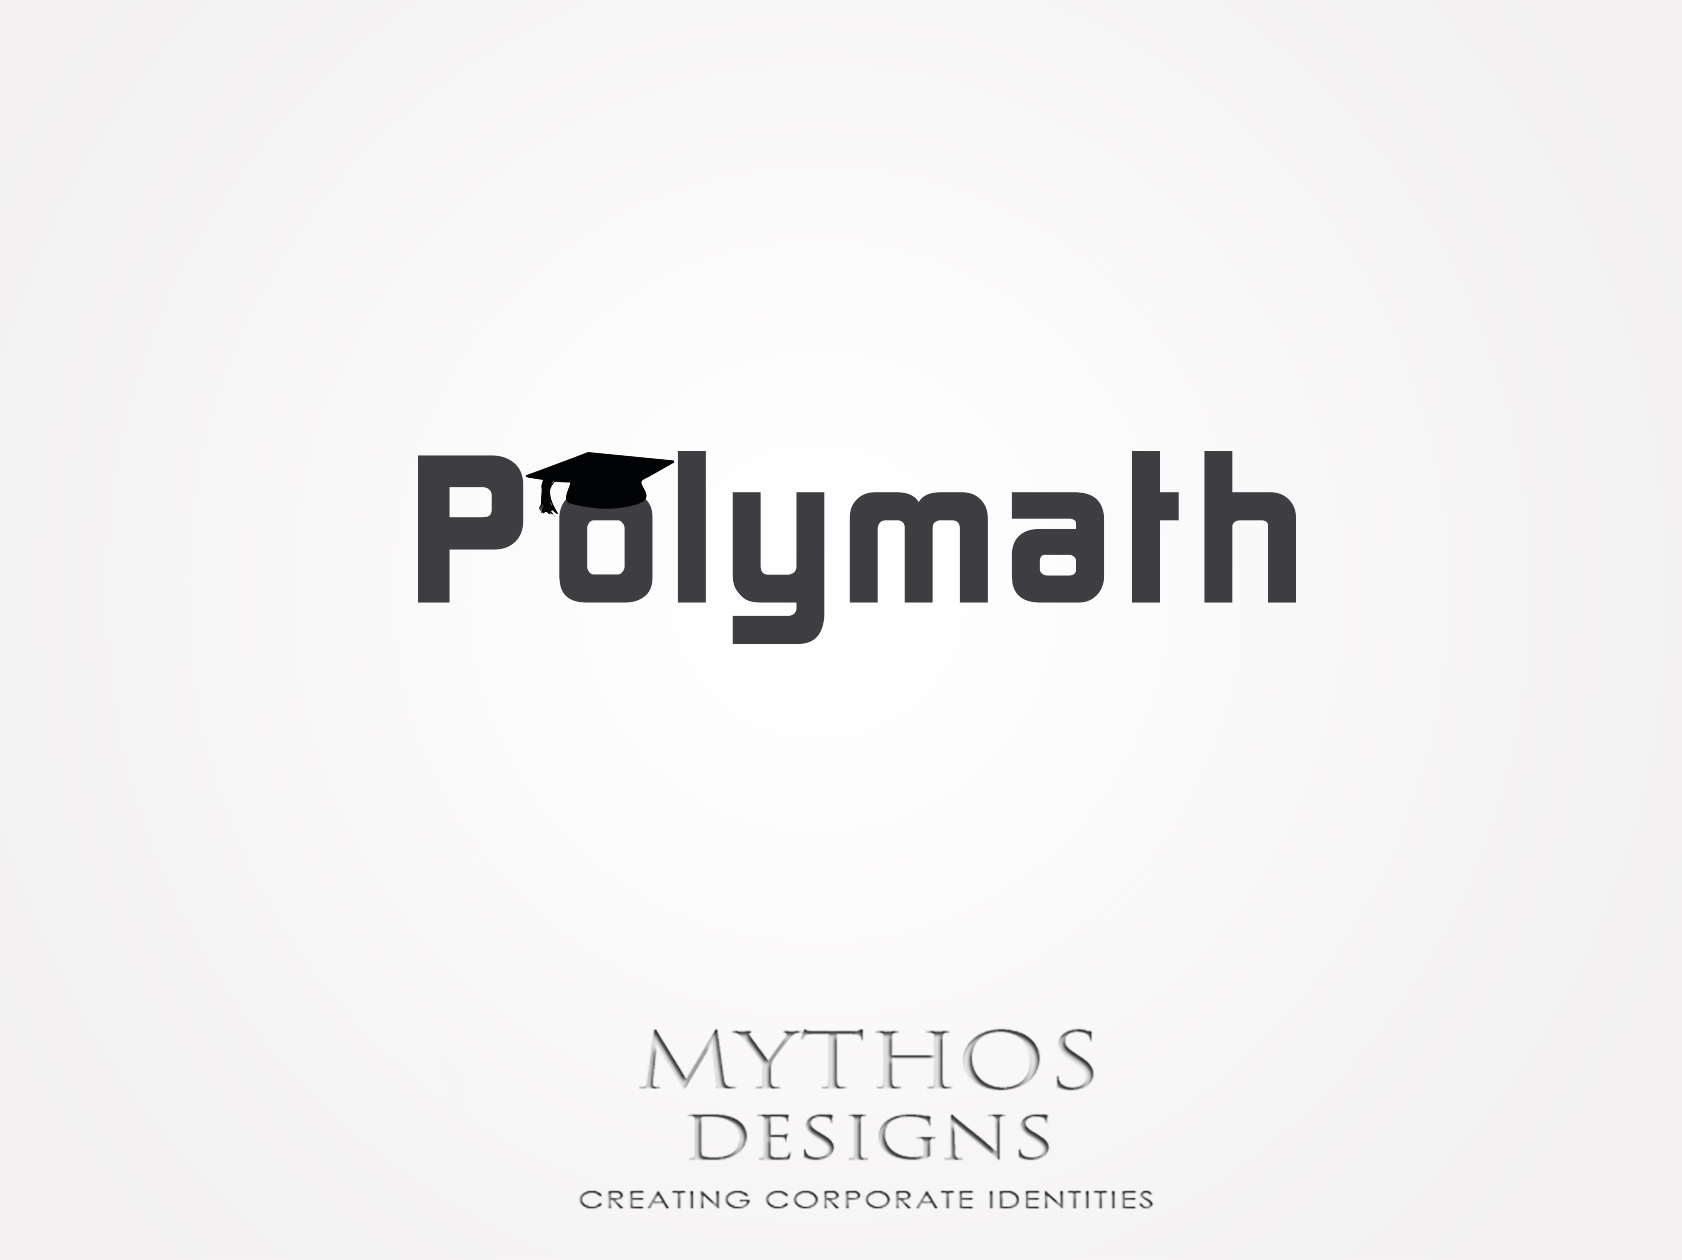 Logo Design by Mythos Designs - Entry No. 36 in the Logo Design Contest Imaginative Logo Design for Polymath.